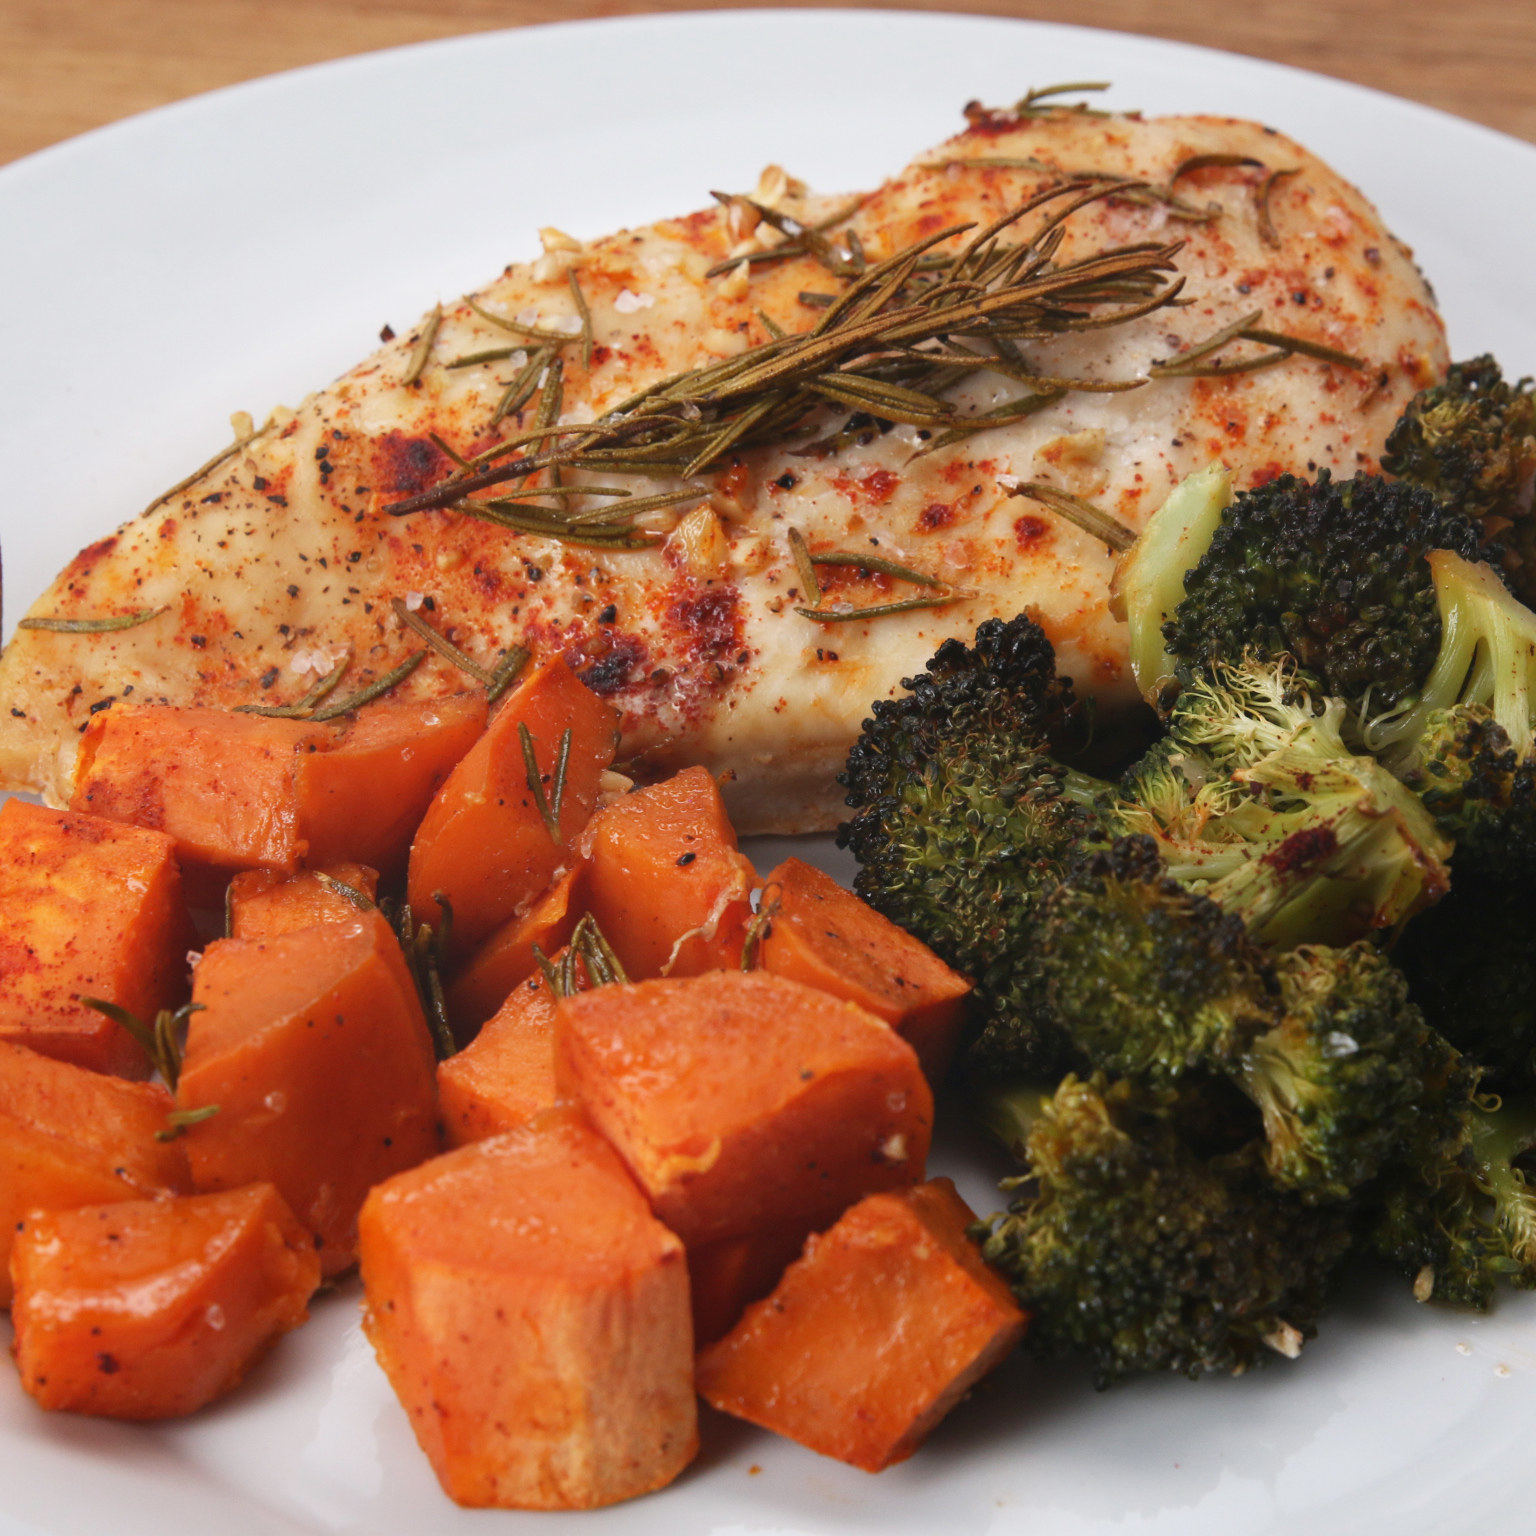 All you need is:– Chicken breasts– Sweet potato– Broccoli– Garlic– Rosemary– Paprika– Salt– Pepper– Olive oilGet the full recipe video here.